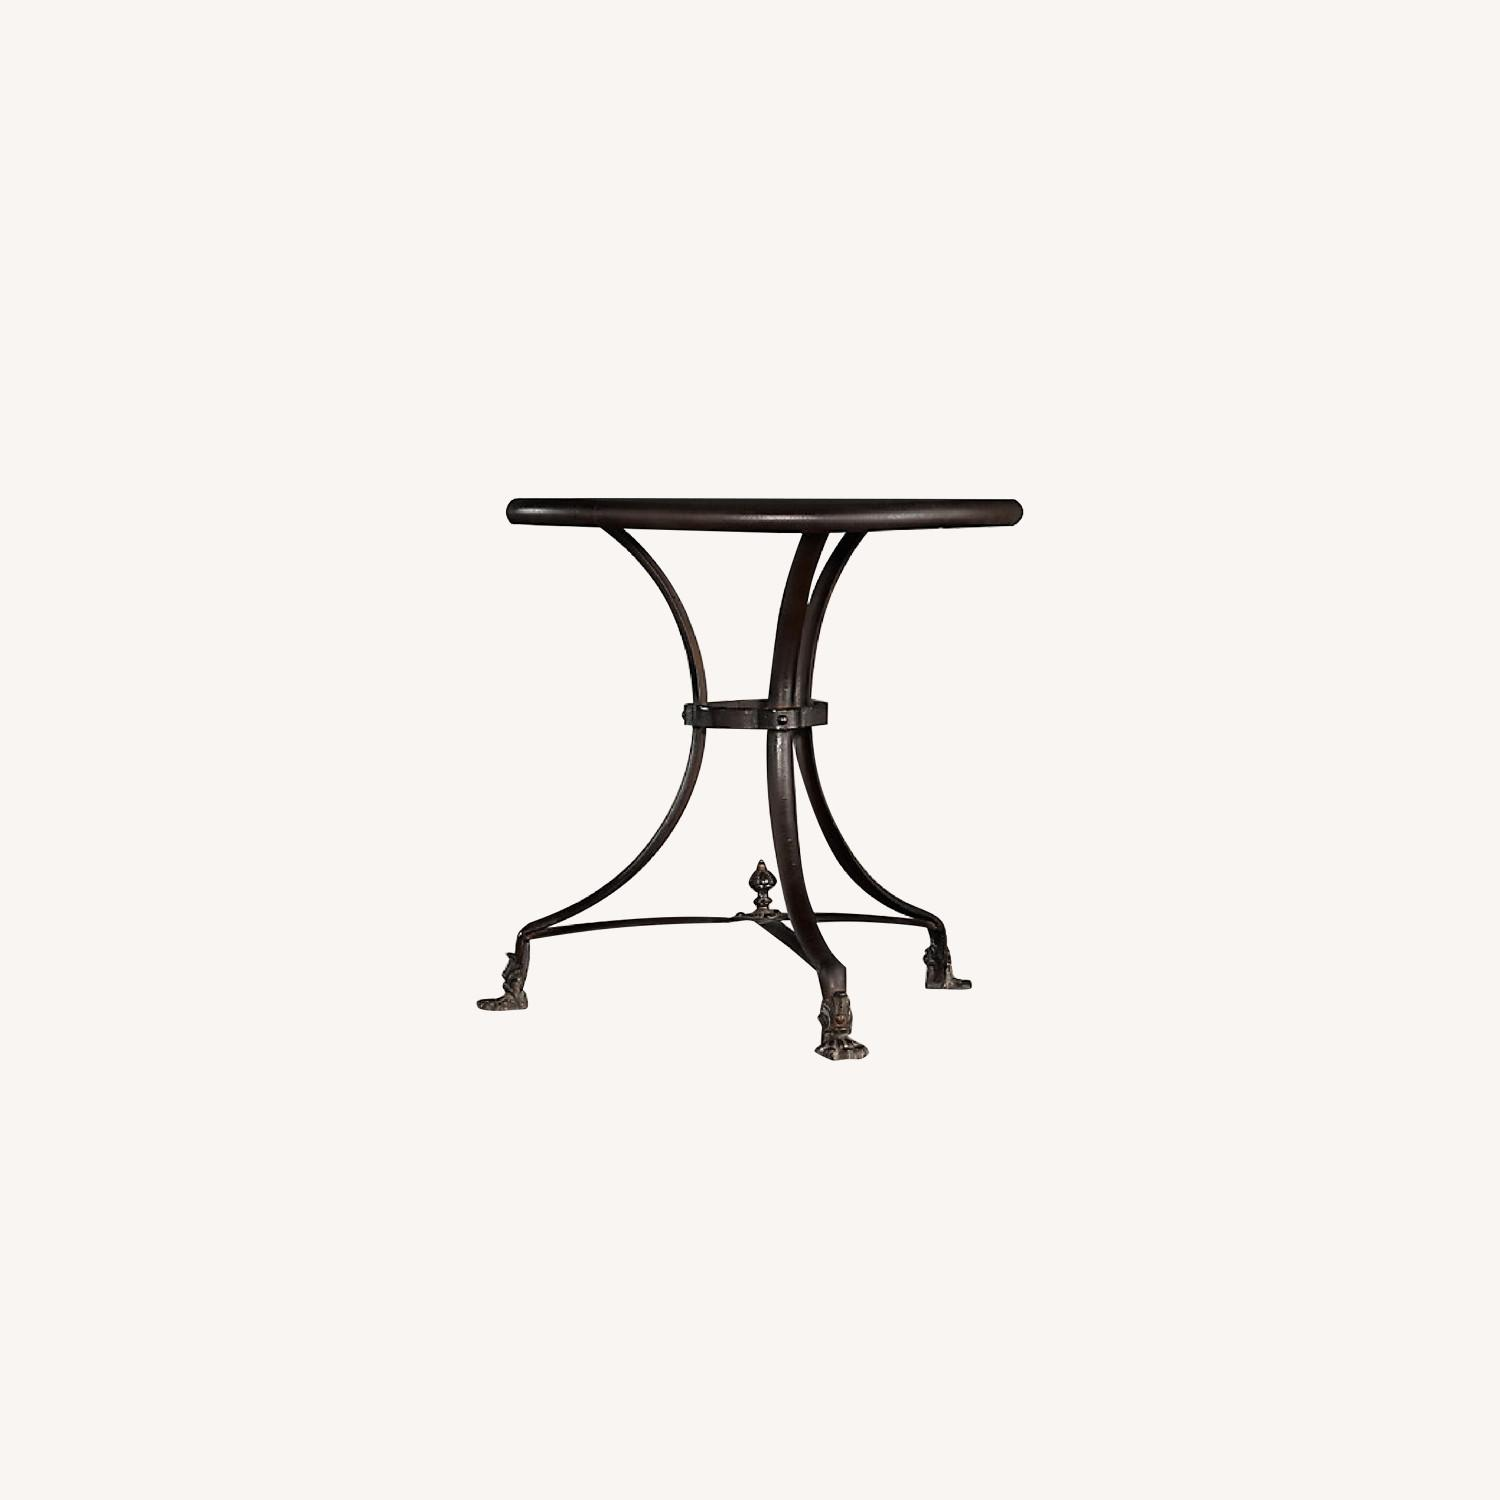 Restoration Hardware French Brasserie Lions Foot Table - image-0